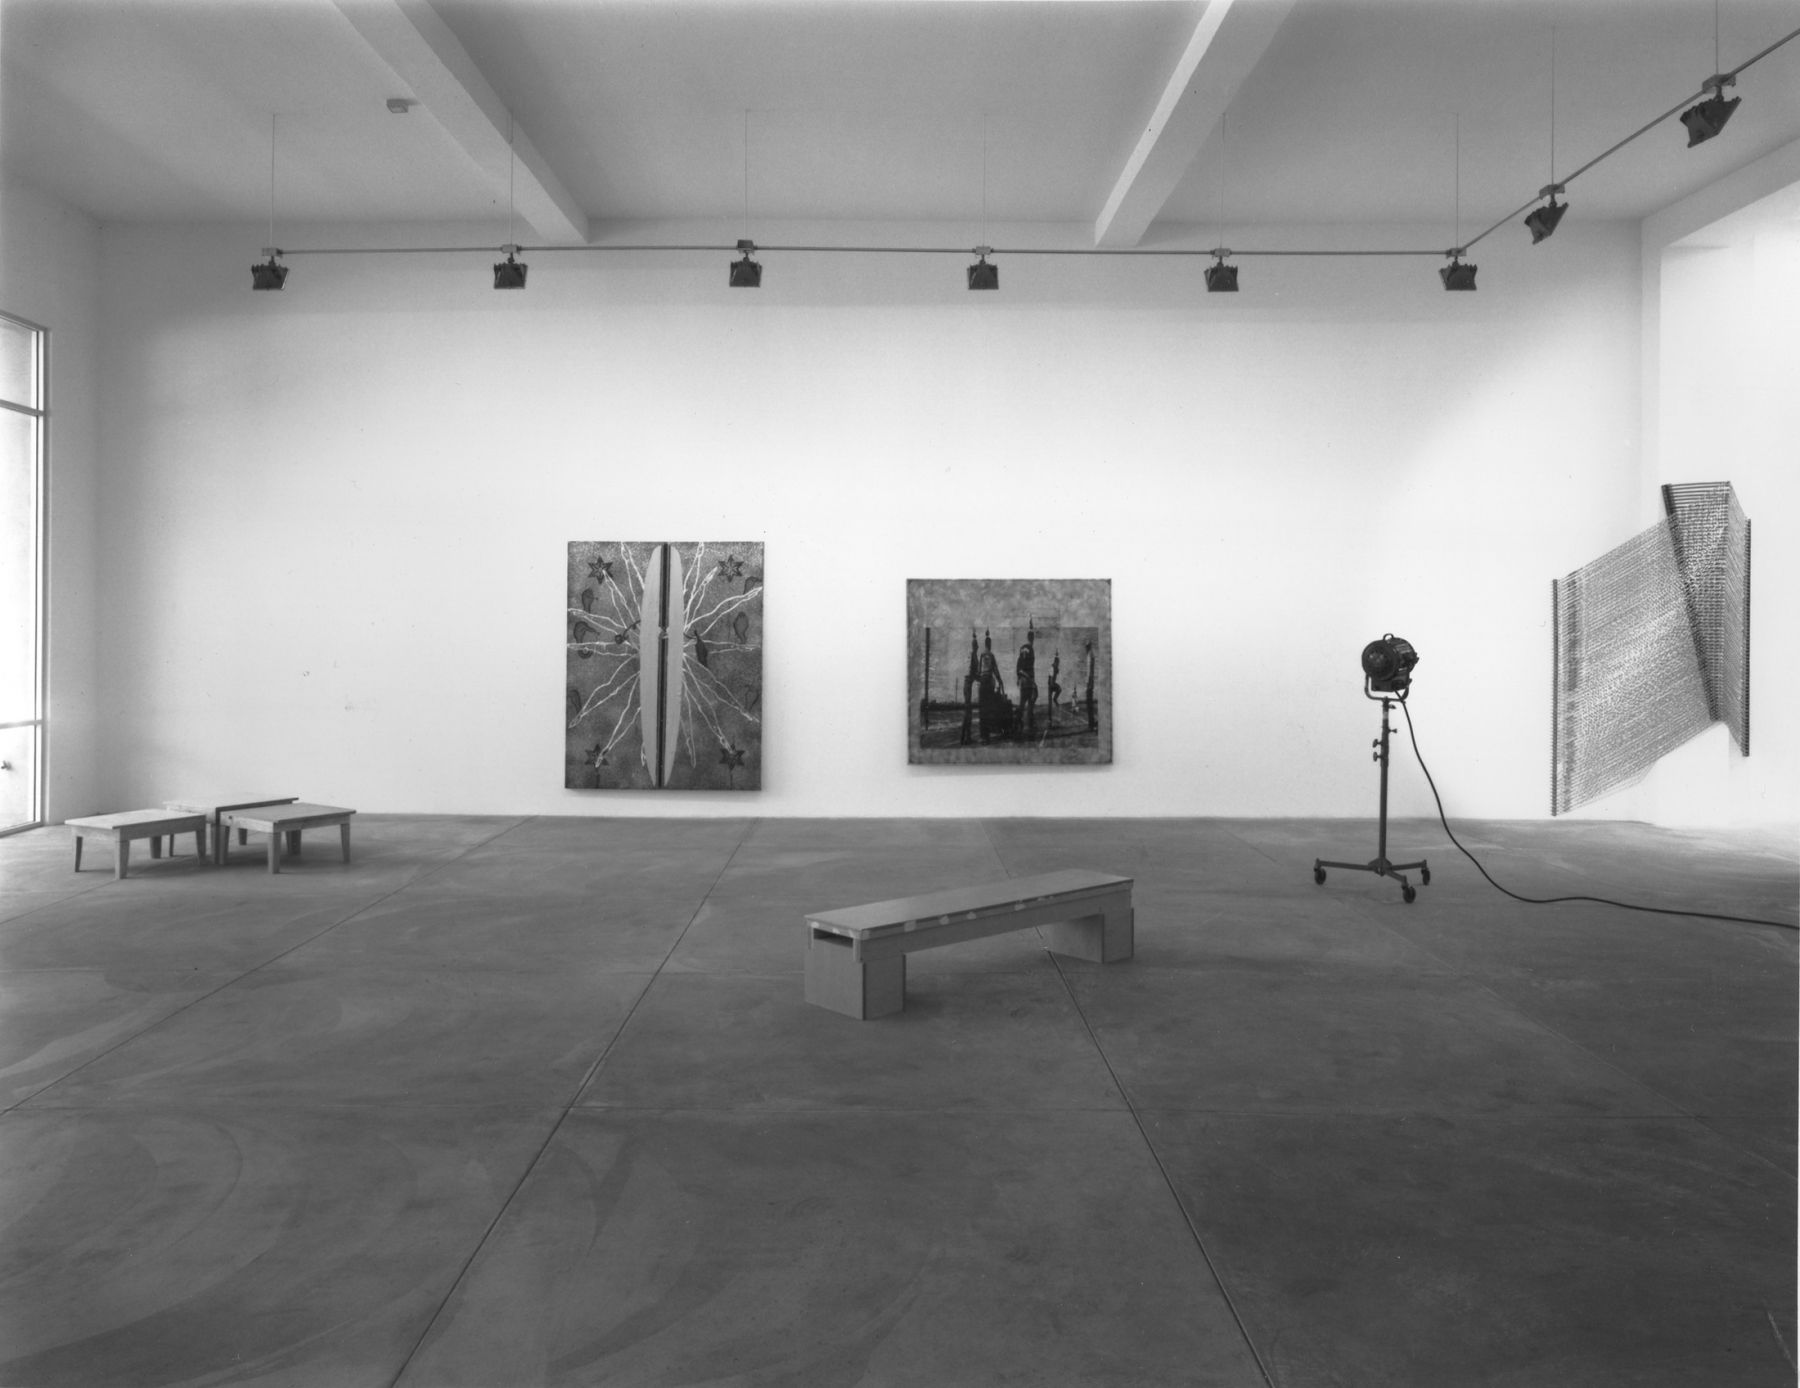 Tom Henry III, Liz Larner, Jorge Pardo, Linda Roush, Sarah Seager, and Thaddeus Strode, Installation view